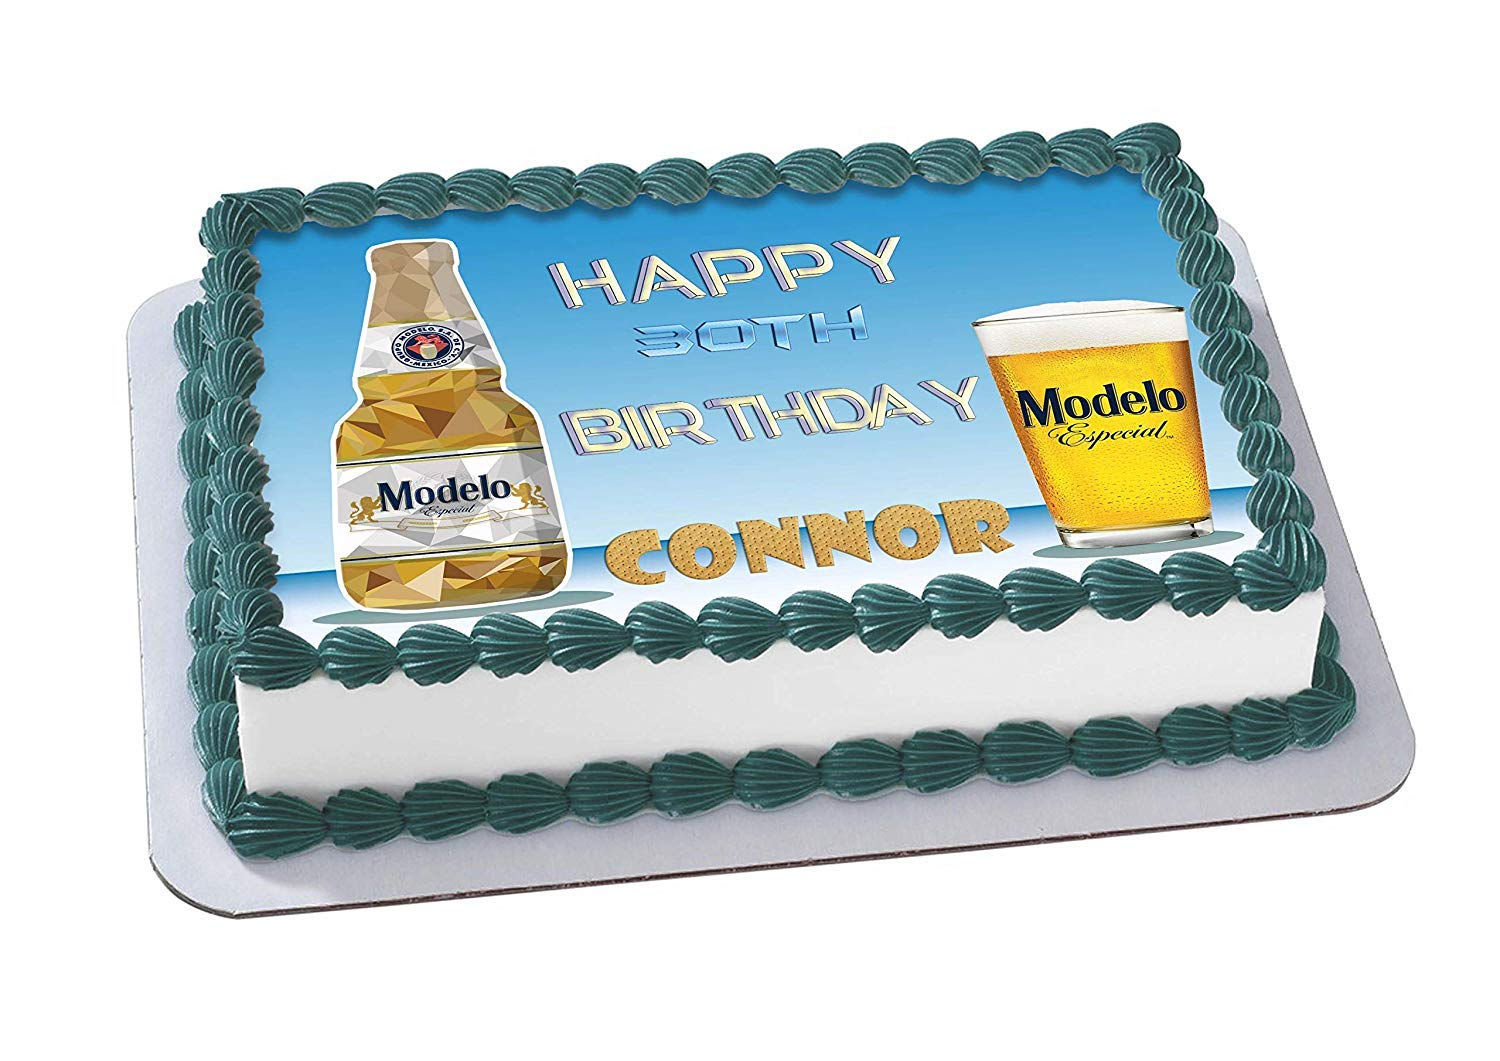 EdibleInkArt Modelo Especial Beer Edible Cake Topper Personalized Birthday 1/4 Sheet Decoration Custom Sheet Party Birthday on Wafer Rice Paper